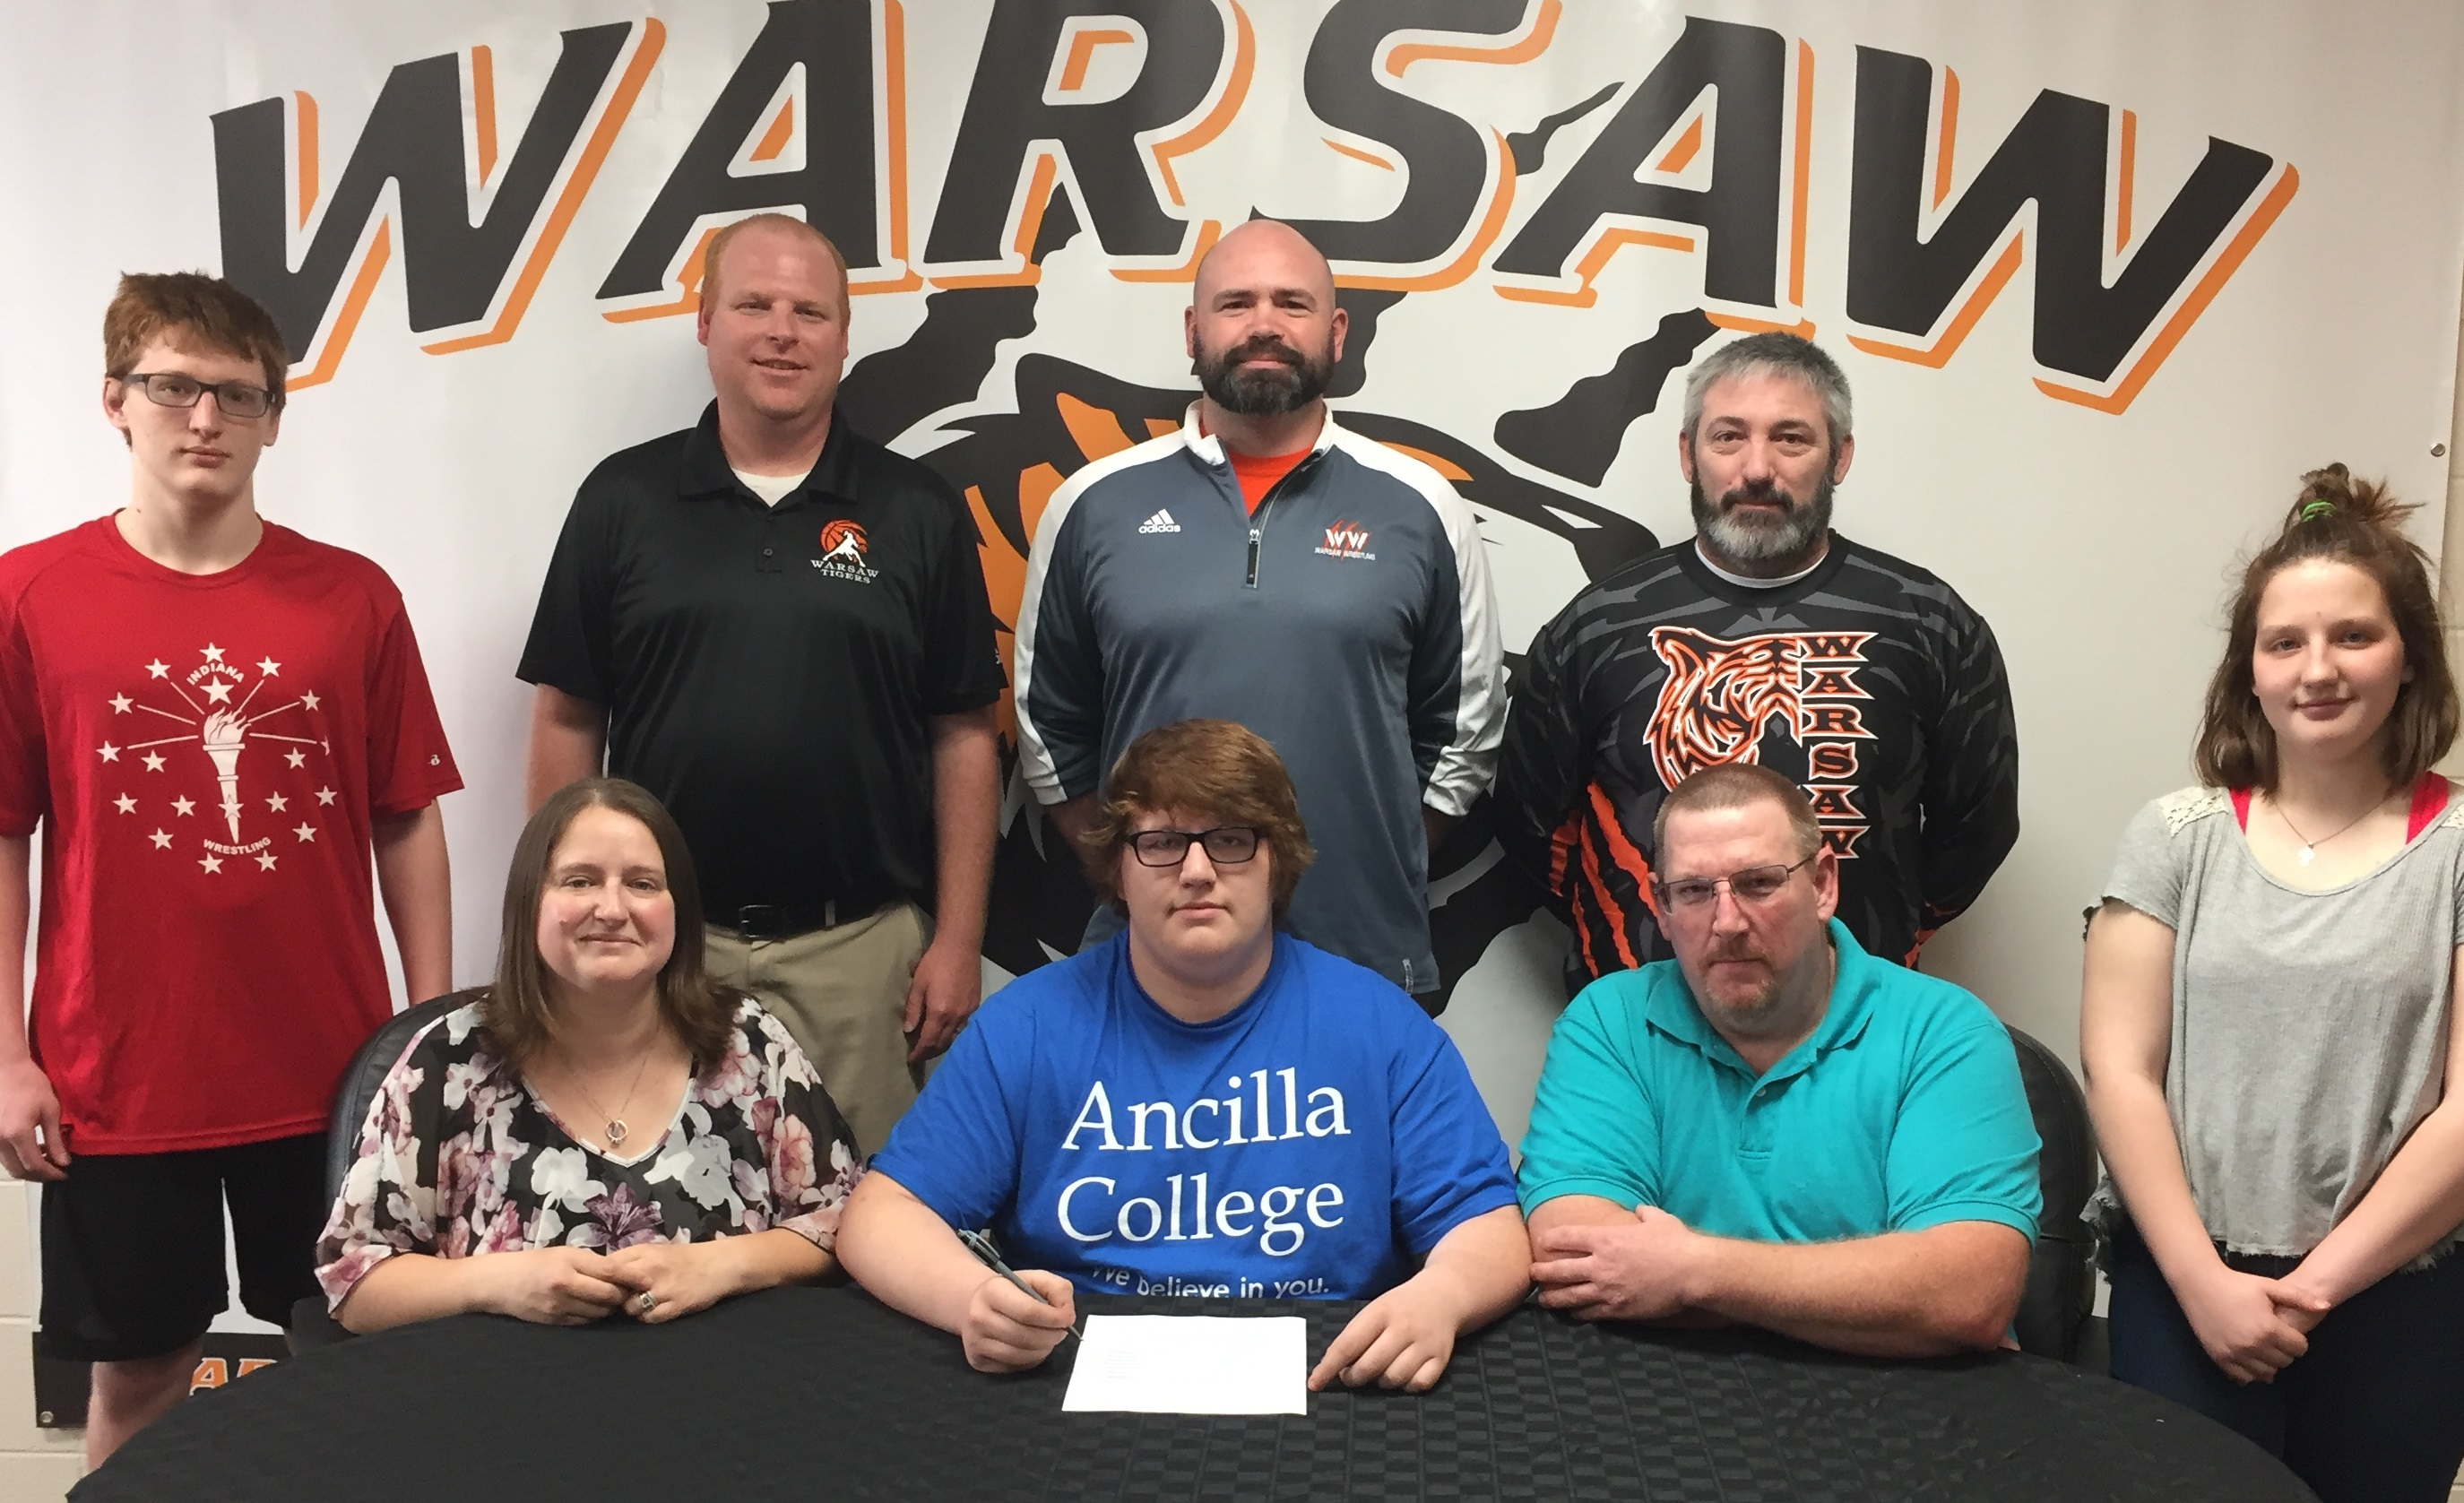 ESTEPP TO CONTINUE EDUCATION AND WRESTLING AT ANCILLA.